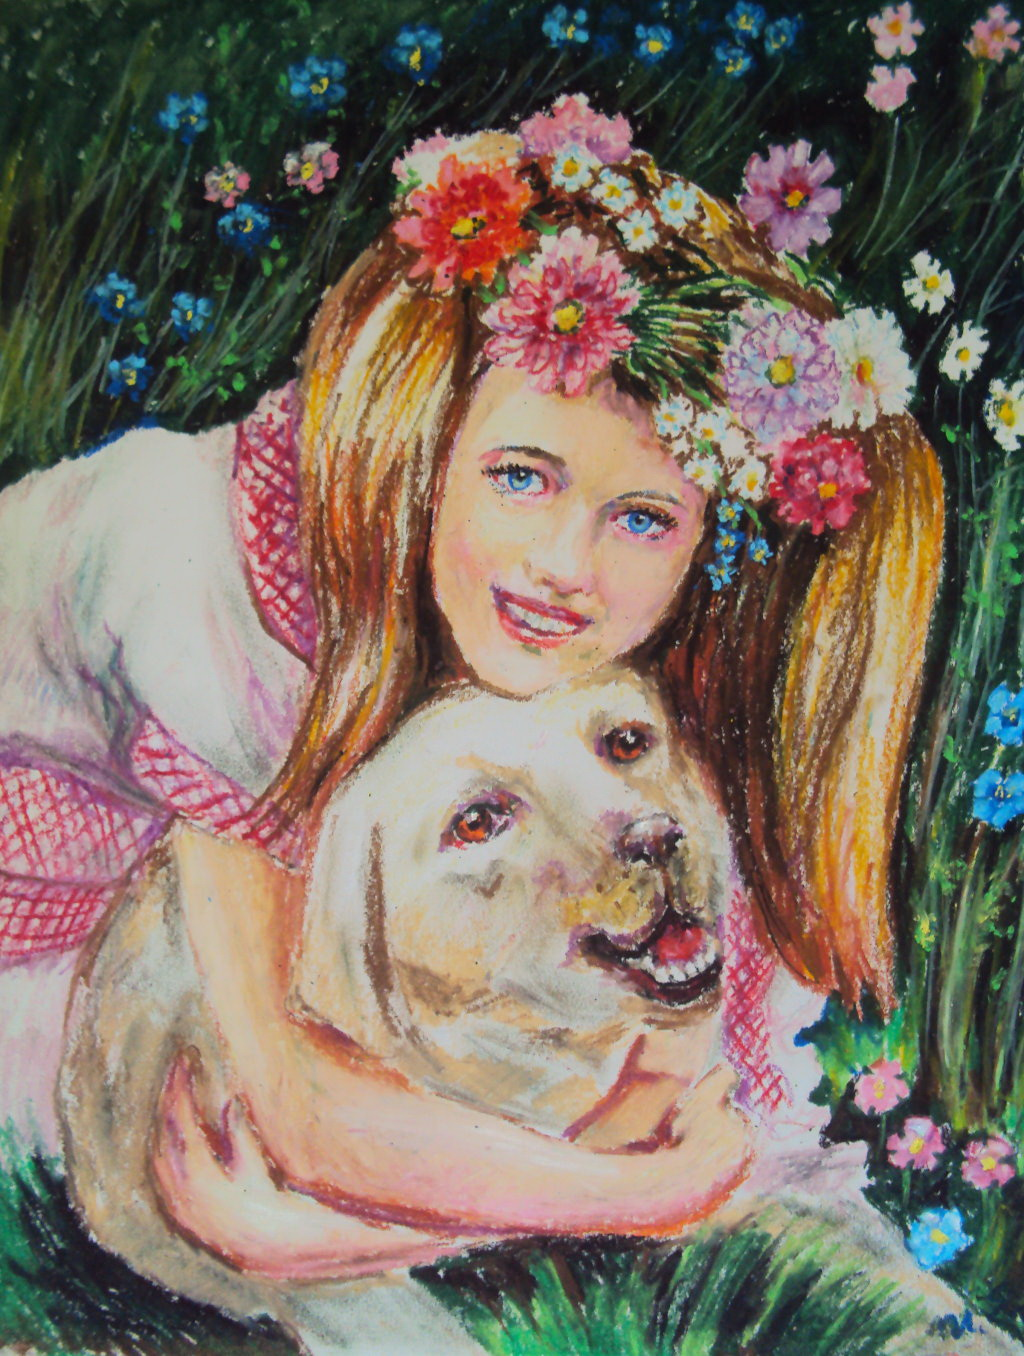 4-1. 愛犬如己 Labrador Retriever and Me 53x38.5cm 蠟筆畫.jpg